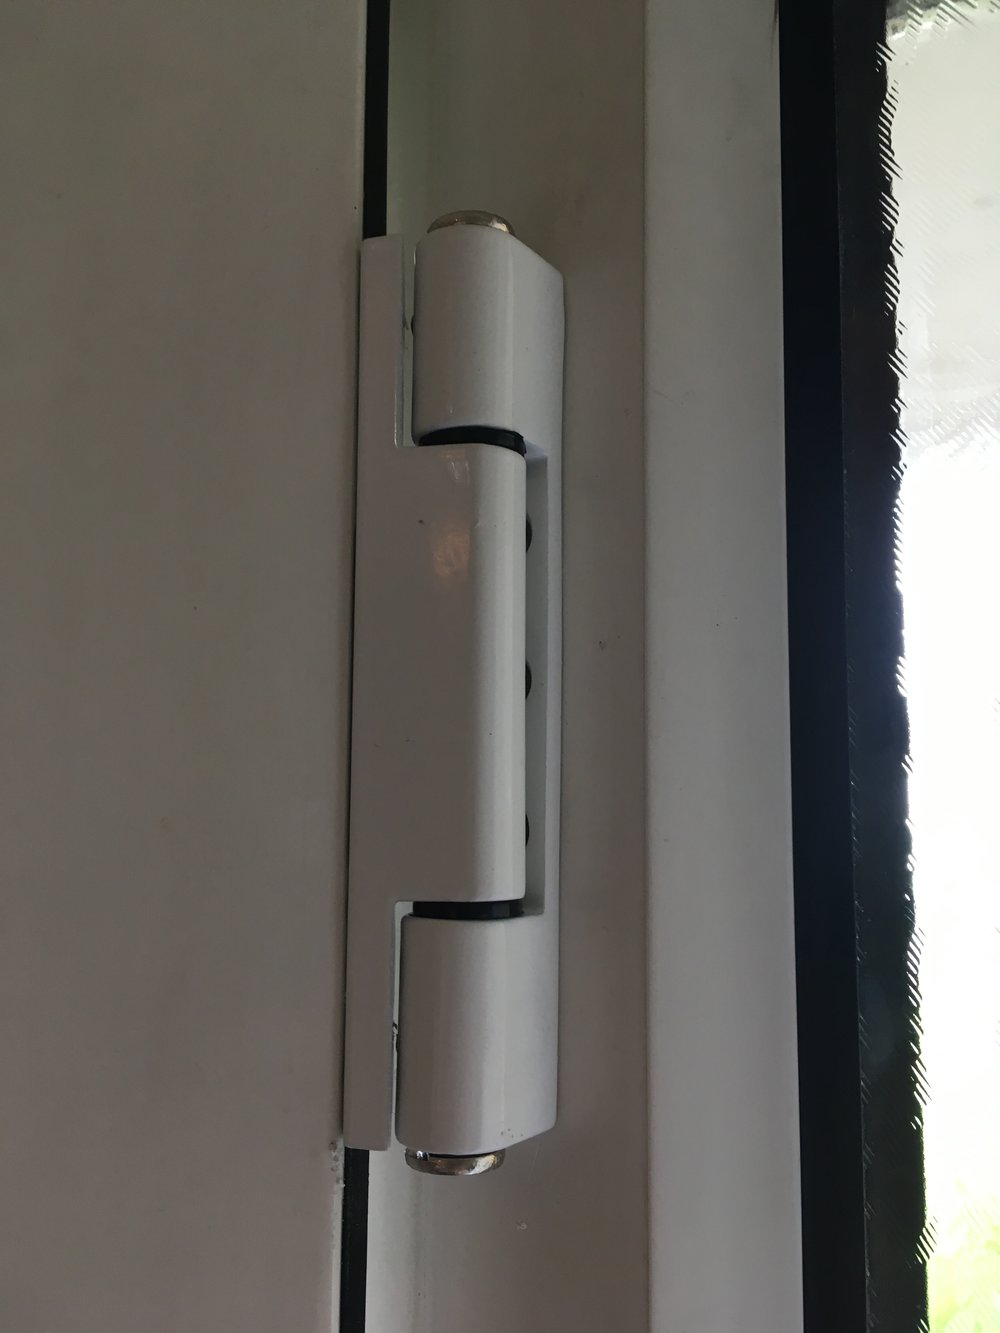 New hinges can increase the life of a door at a fraction of the cost.